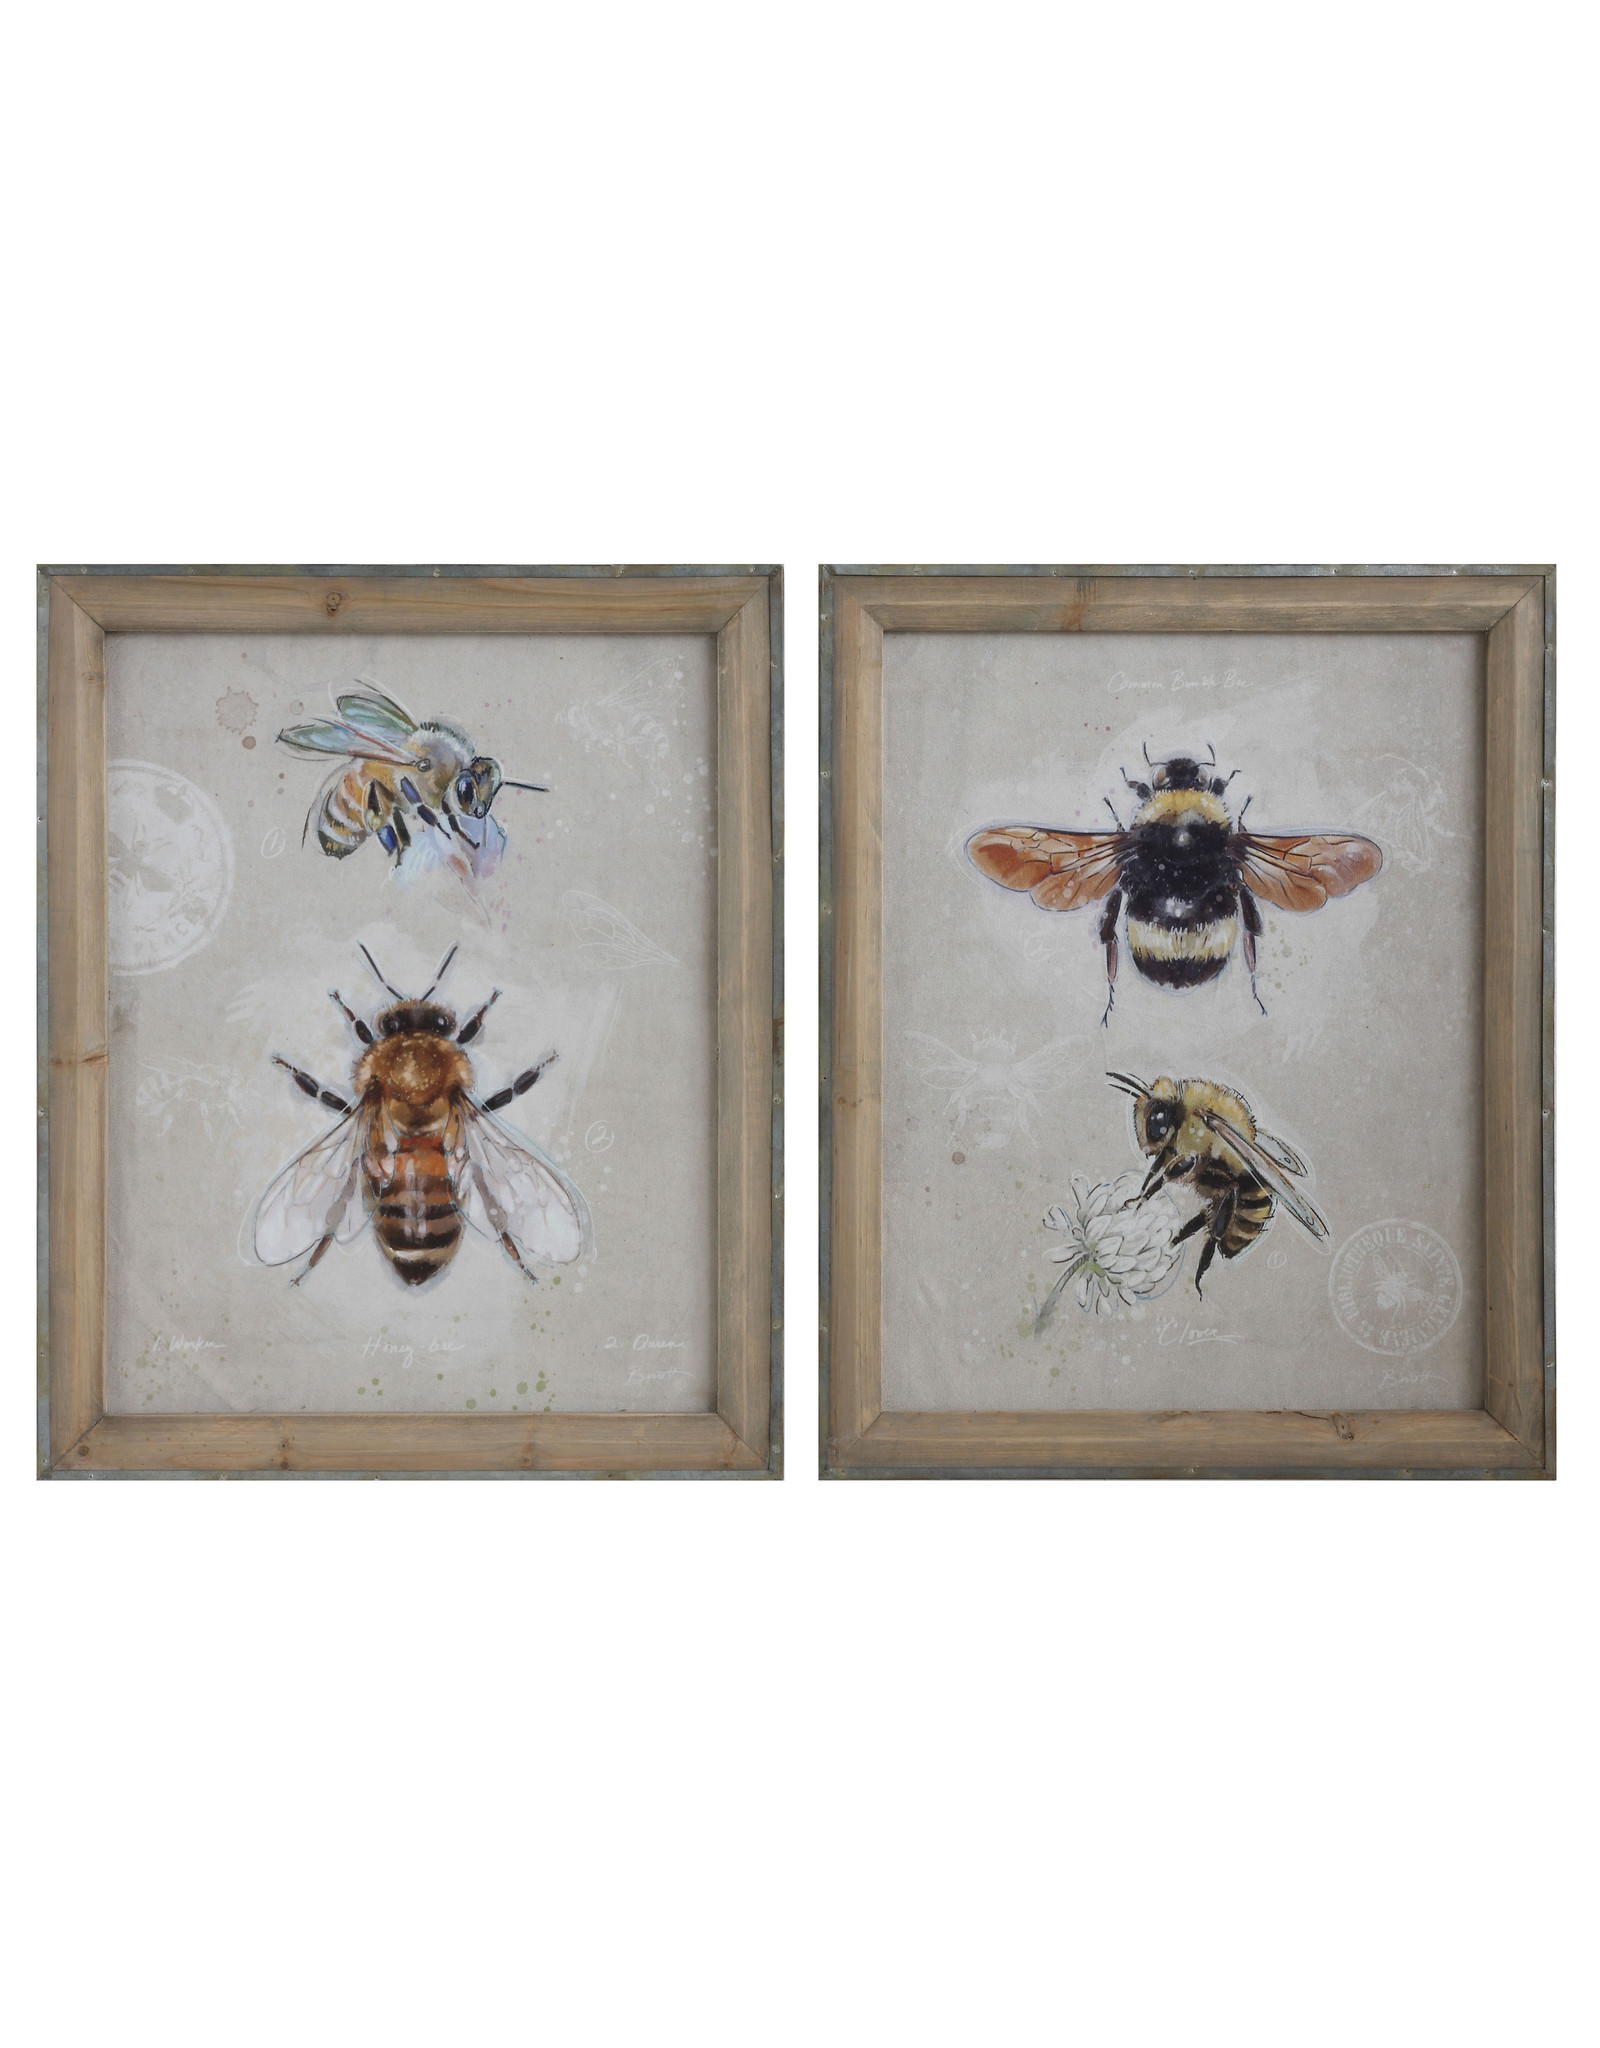 Wood Framed Canvas Wall Art with Bee Images (Set of 2 Designs)